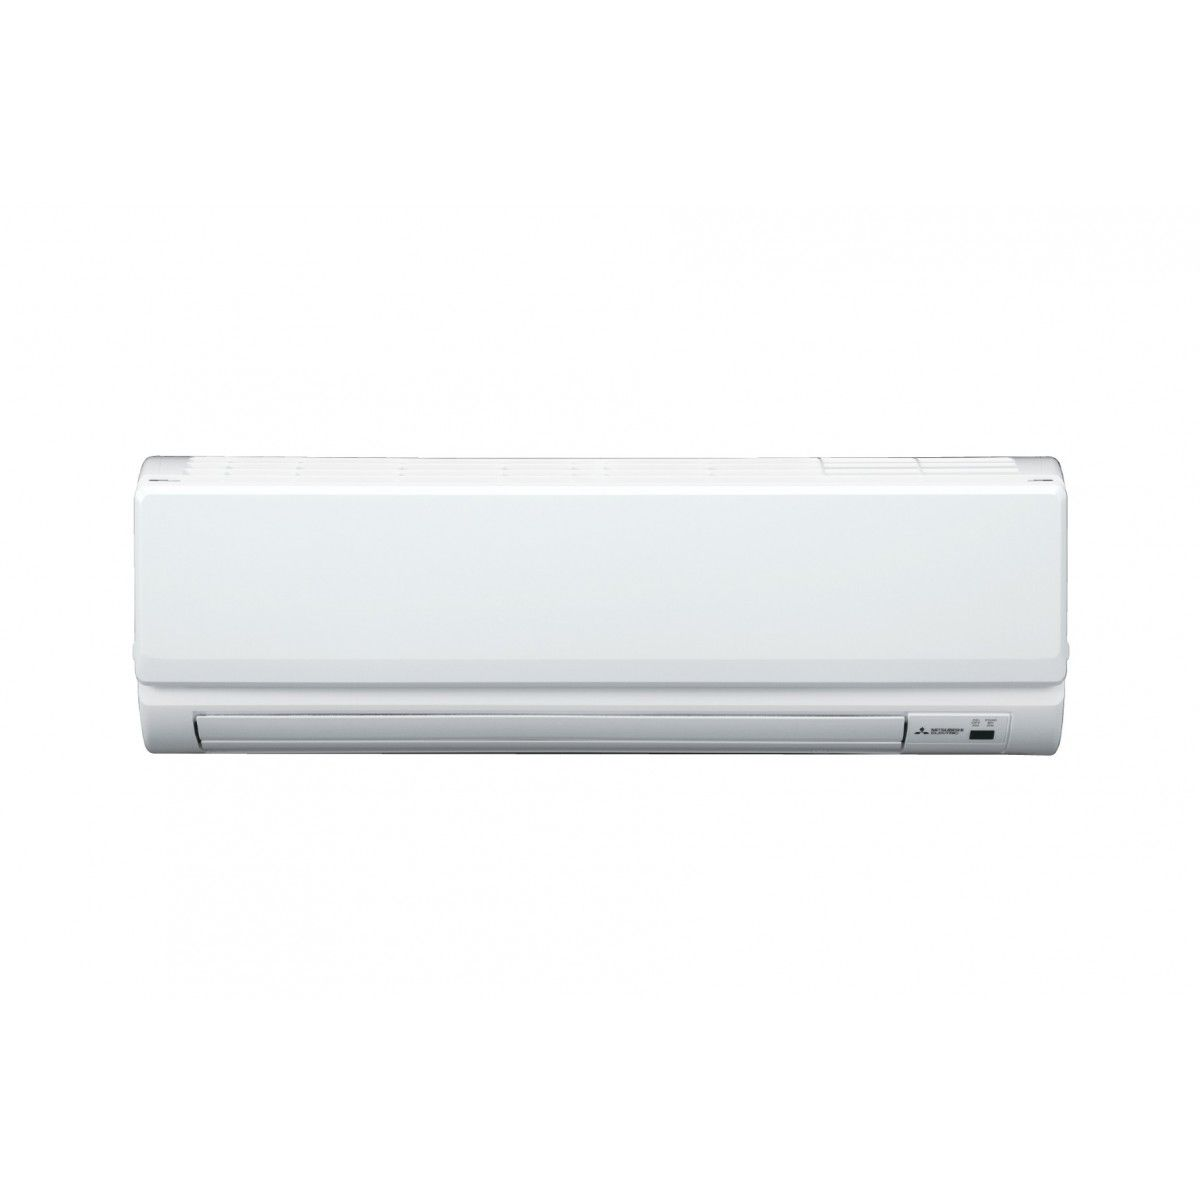 PKAA Wall Mounted Indoor Unit in Ductless AC Components Ductless AC #5C6F6F